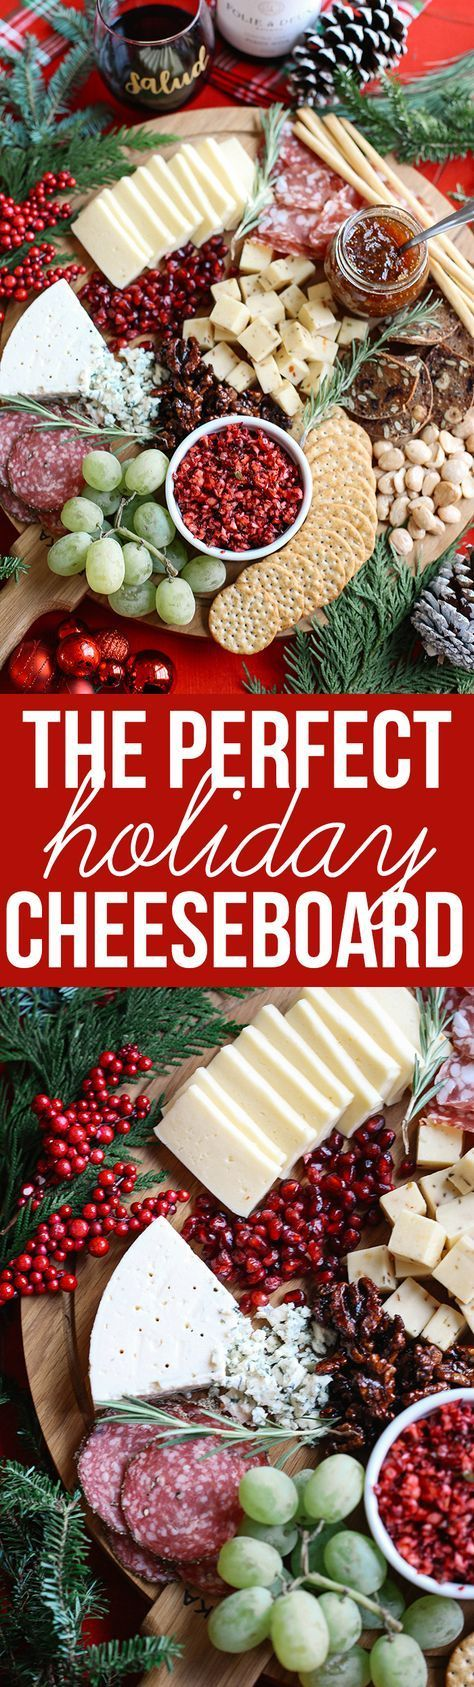 Learn how to create the perfect holiday cheese board in just five simple steps with an assortment of cheeses, fresh fruits and nuts with a variety of meats, crackers and spreads! Courtney Thurman